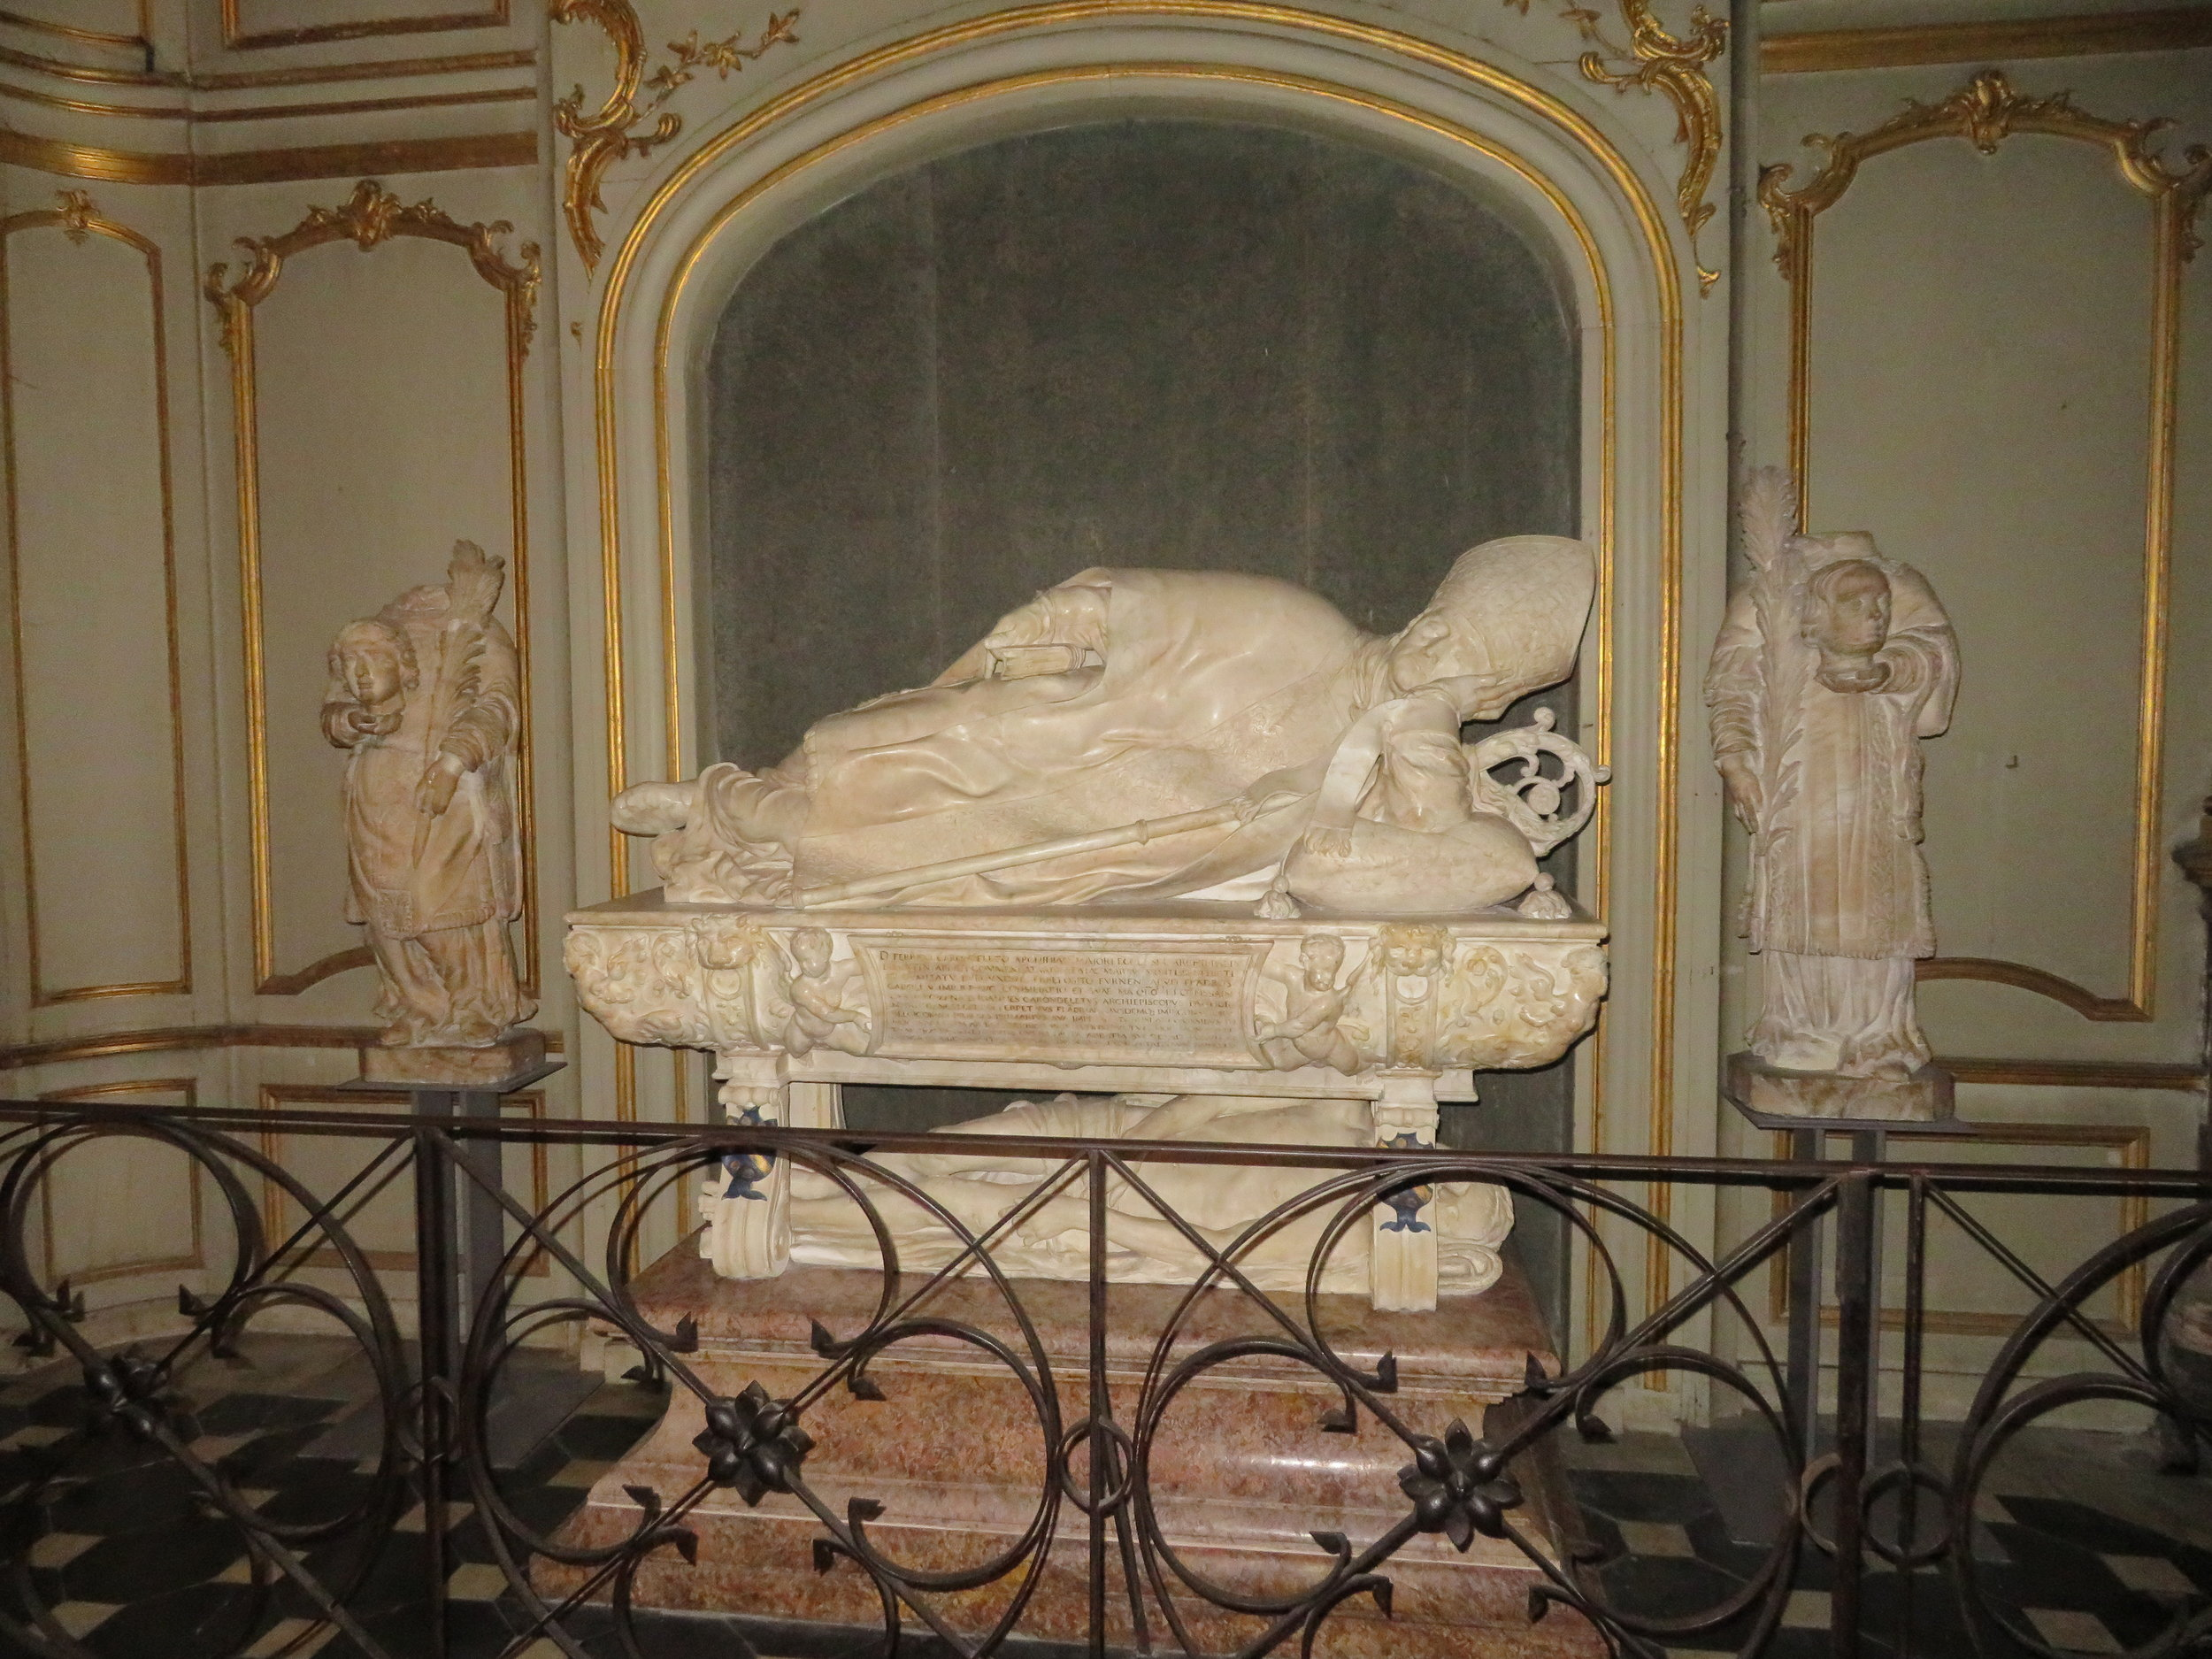 Ferry Carondolet's grave, a finely sculptured tomb